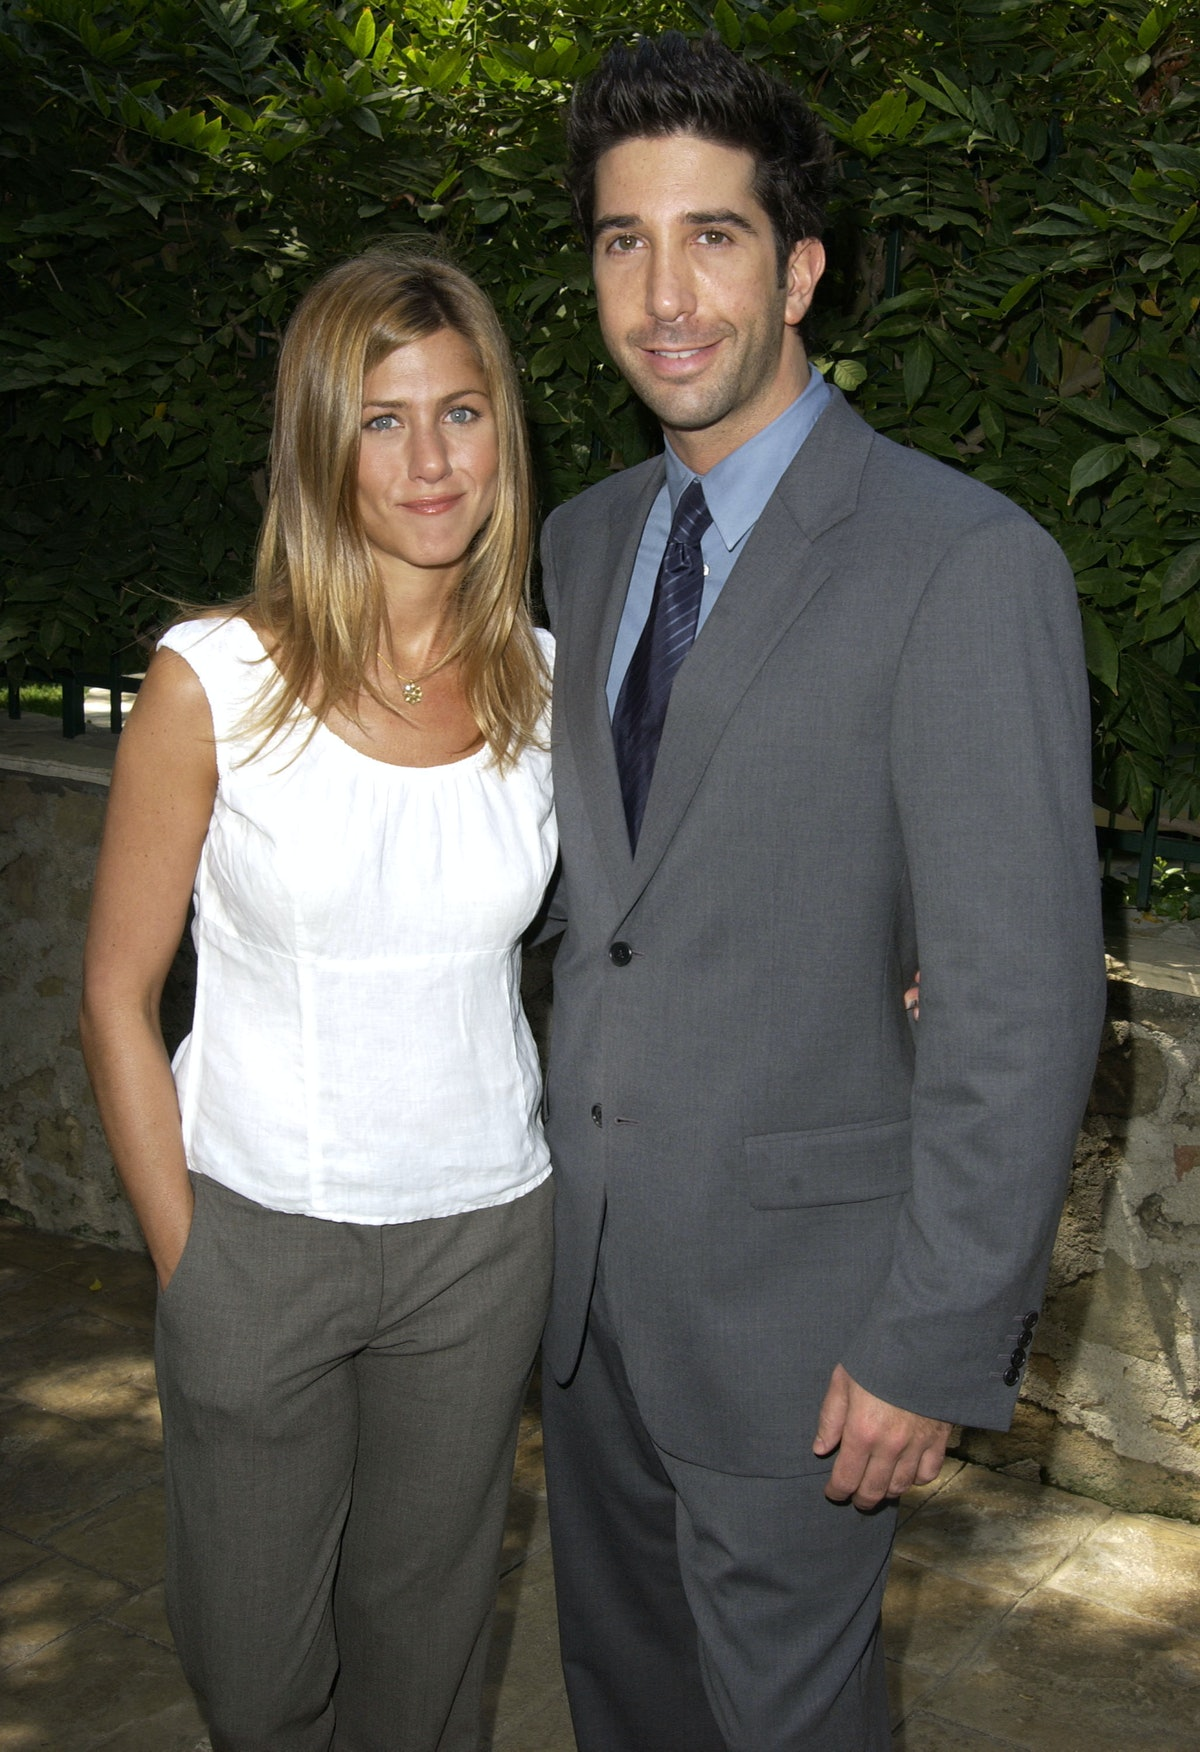 Jennifer Aniston and David Schwimmer admitted to having crushes on each other during Friends.